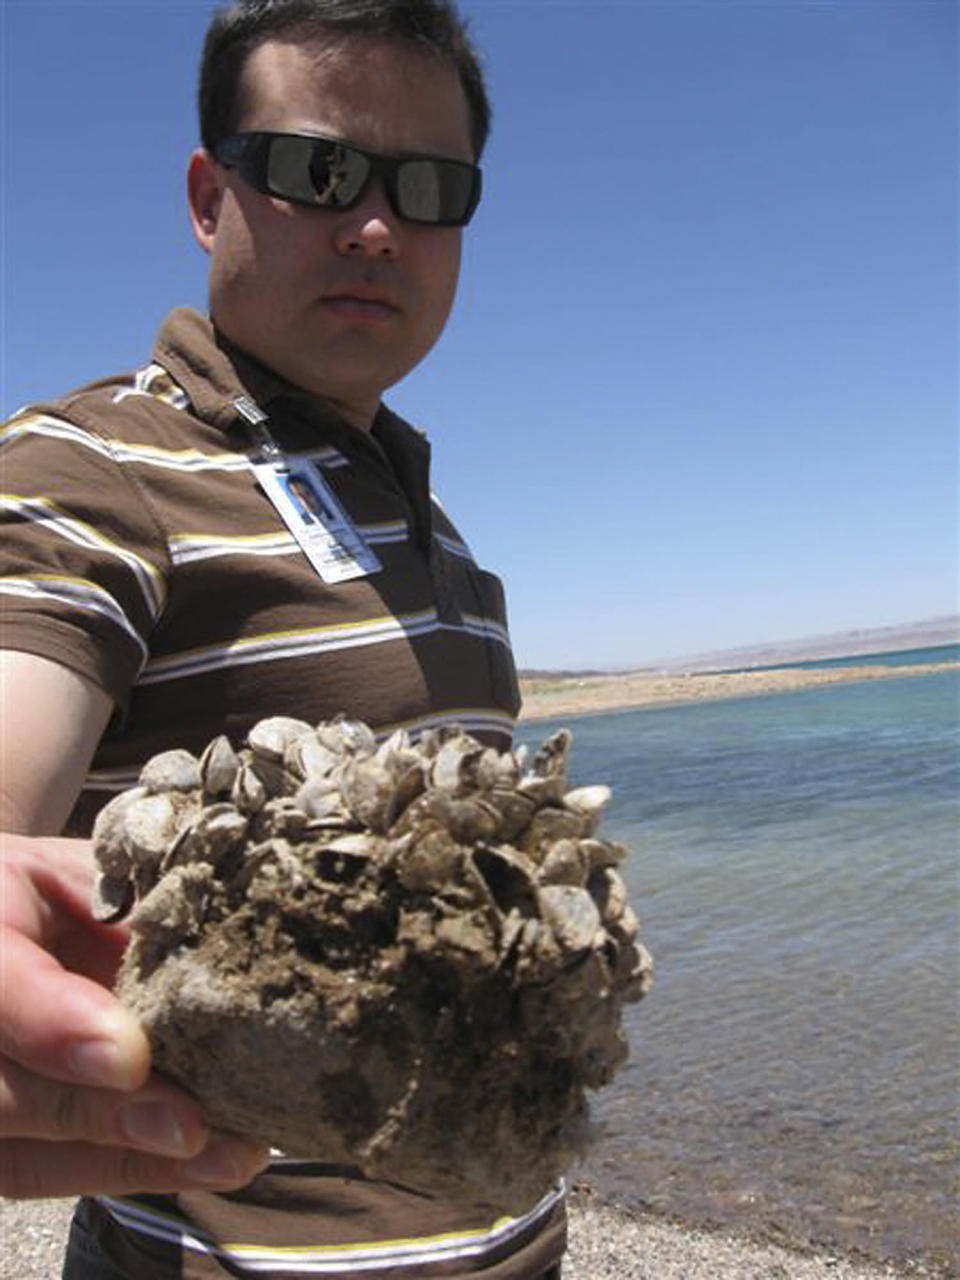 File - In this July 6, 2009 file photo, Andrew Munoz, of the Lake Mead National Recreation Area, holds up a rock covered with the invasive quagga mussels at Lake Mead National Recreation Area, Nev. A regional power planning group from Idaho, Oregon, Washington and Montana is pursuing $2 million from the federal government to help fend off the menace of invasive mussels that have clogged Colorado River reservoirs since 2007. These states and others say they're frustrated by the number of boats that continue to come from Lake Mead in Nevada and Arizona over their borders infested with quagga and zebra mussels. (AP Photo/Felicia Fonseca, File)